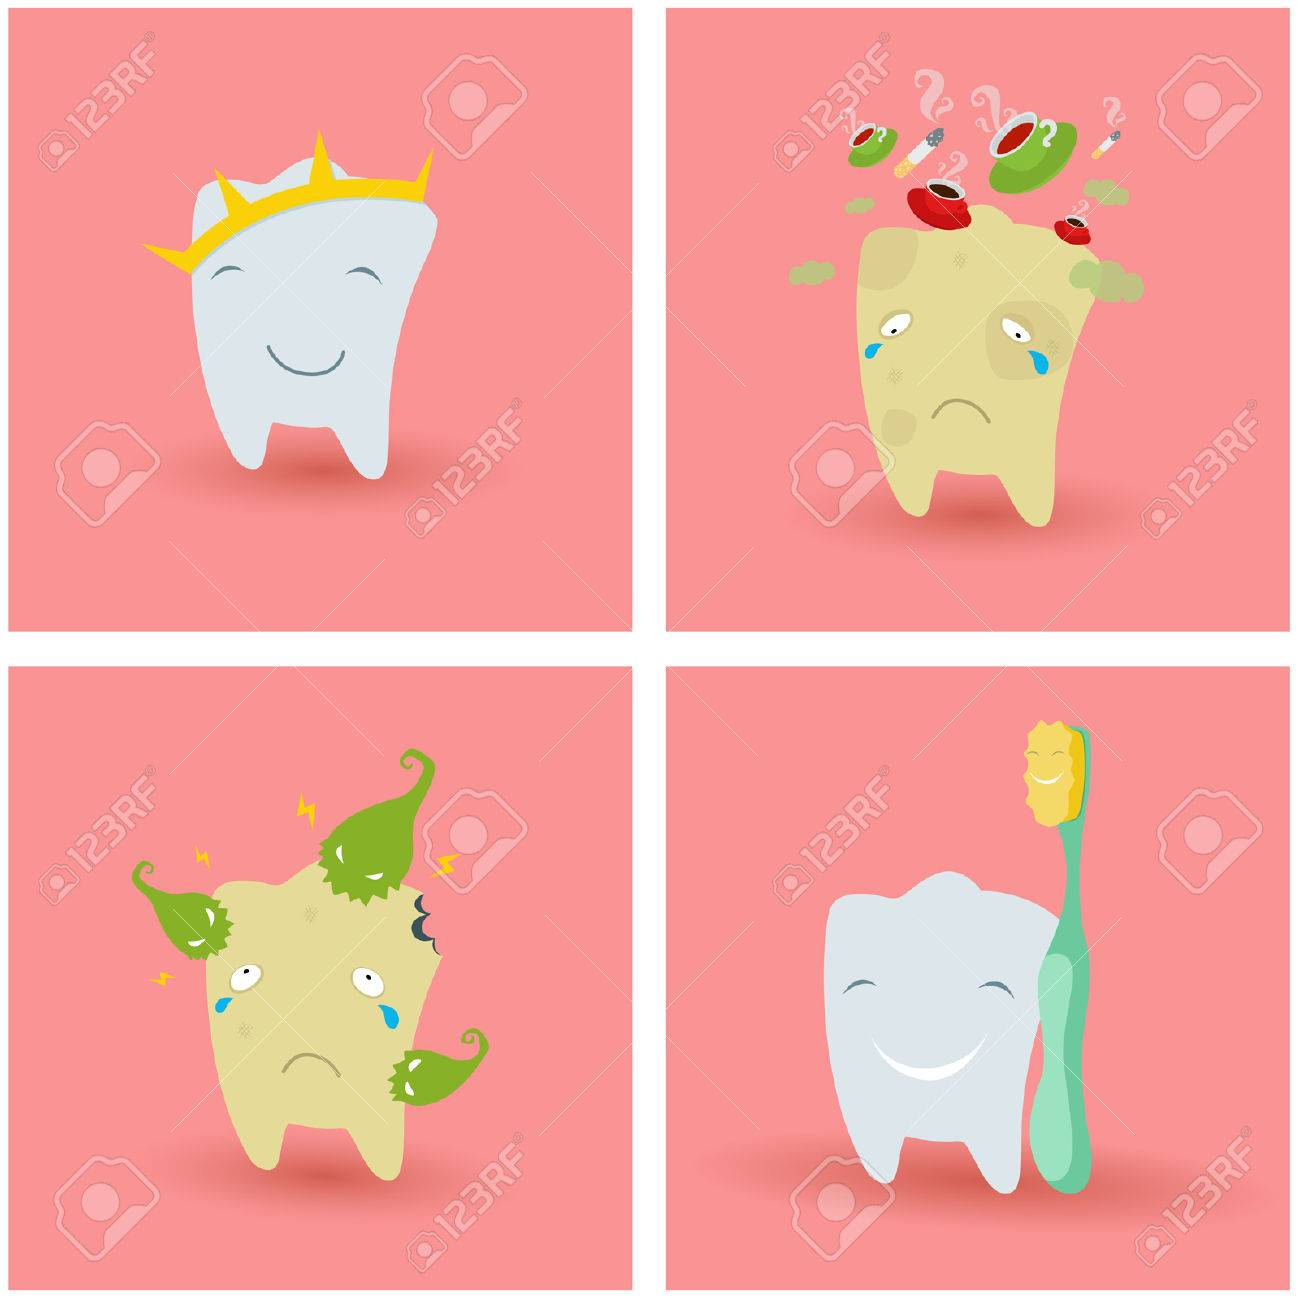 Illustration of healthy and ill Teeth Stock Vector - 23578312